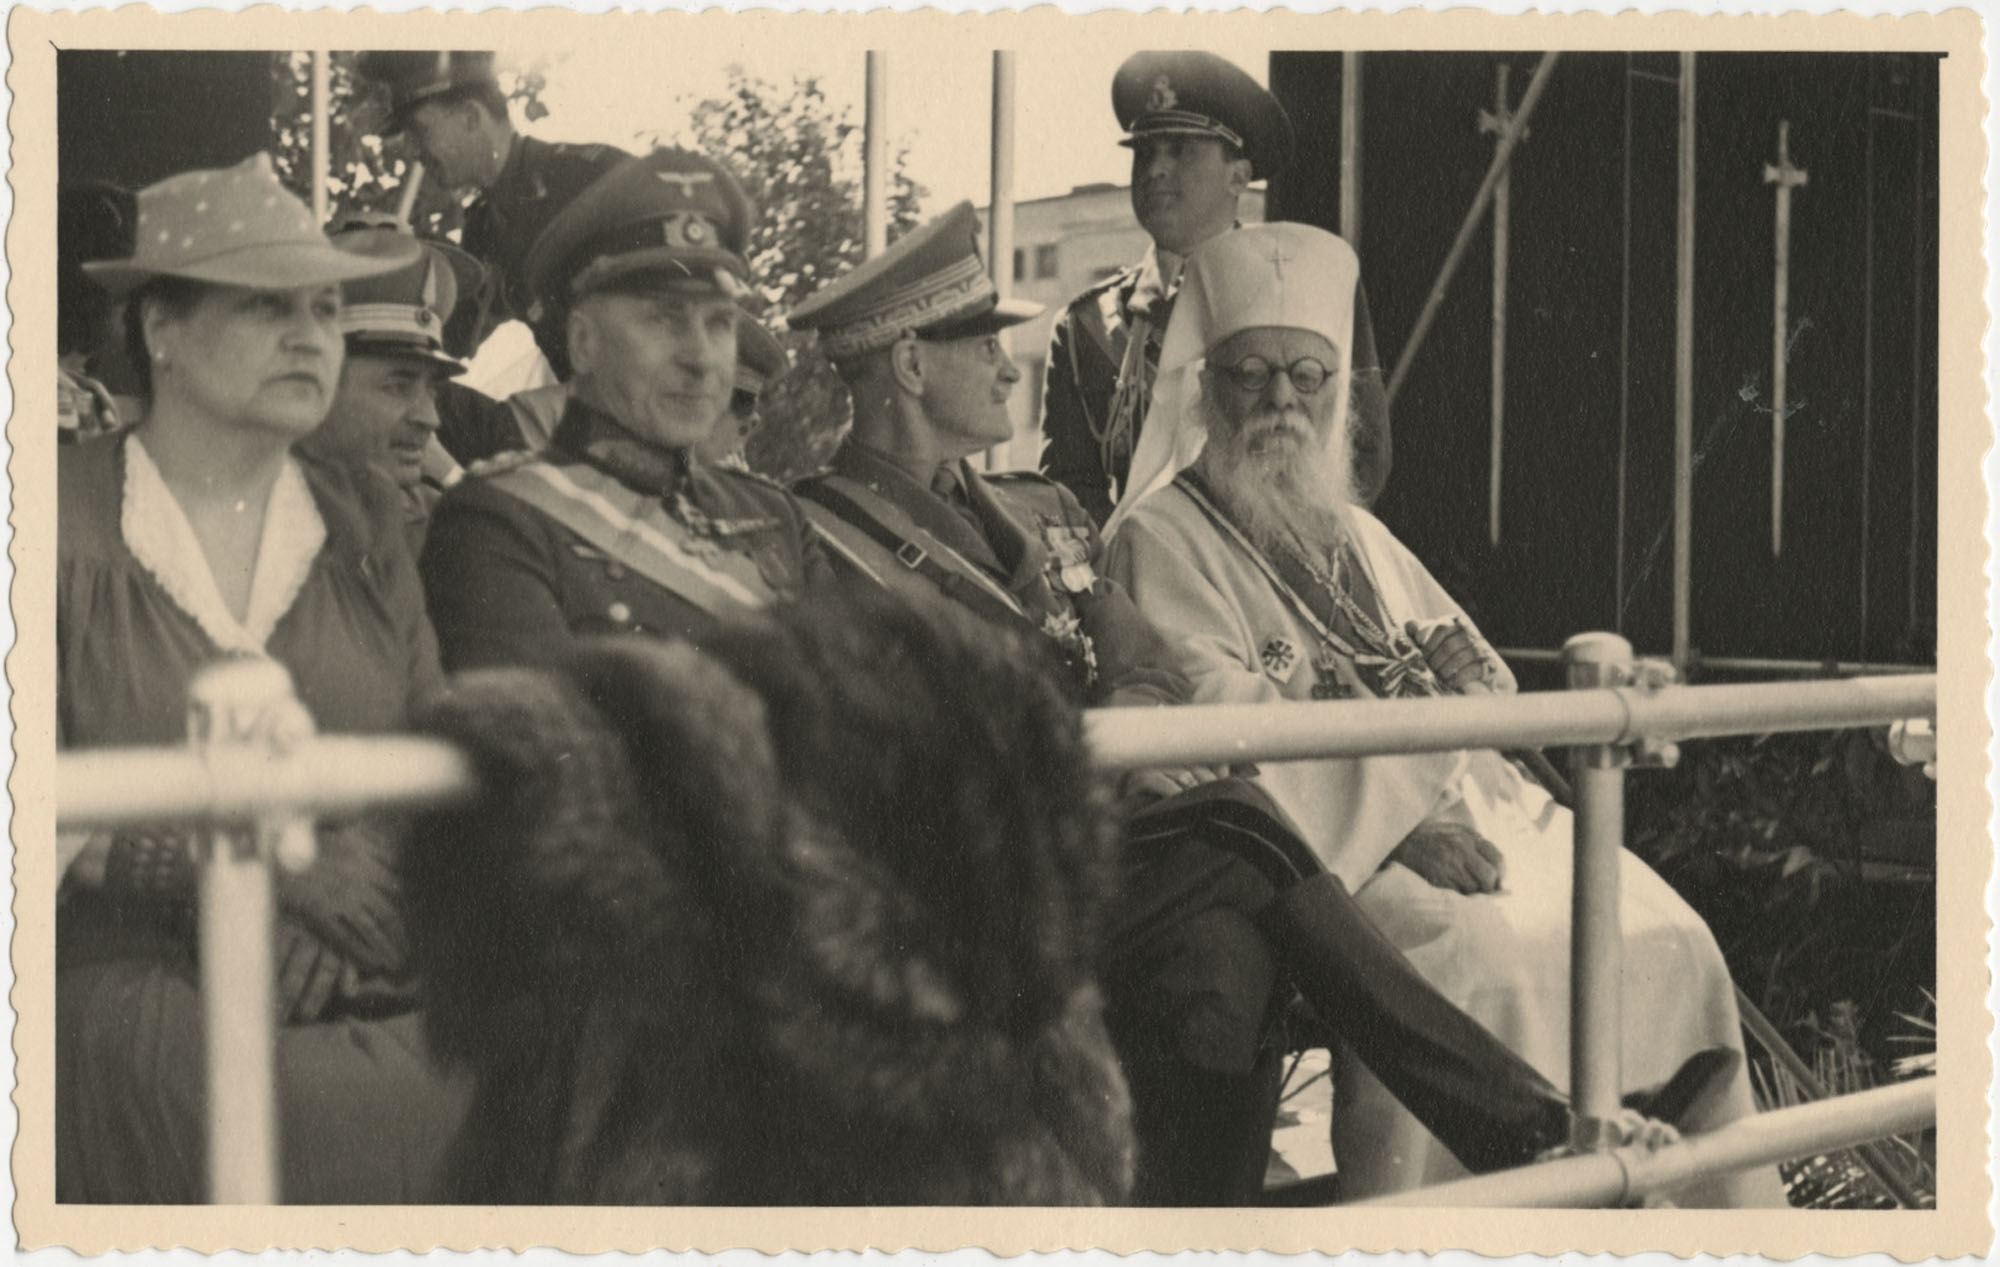 Officials observing a military ceremony, Photograph 2